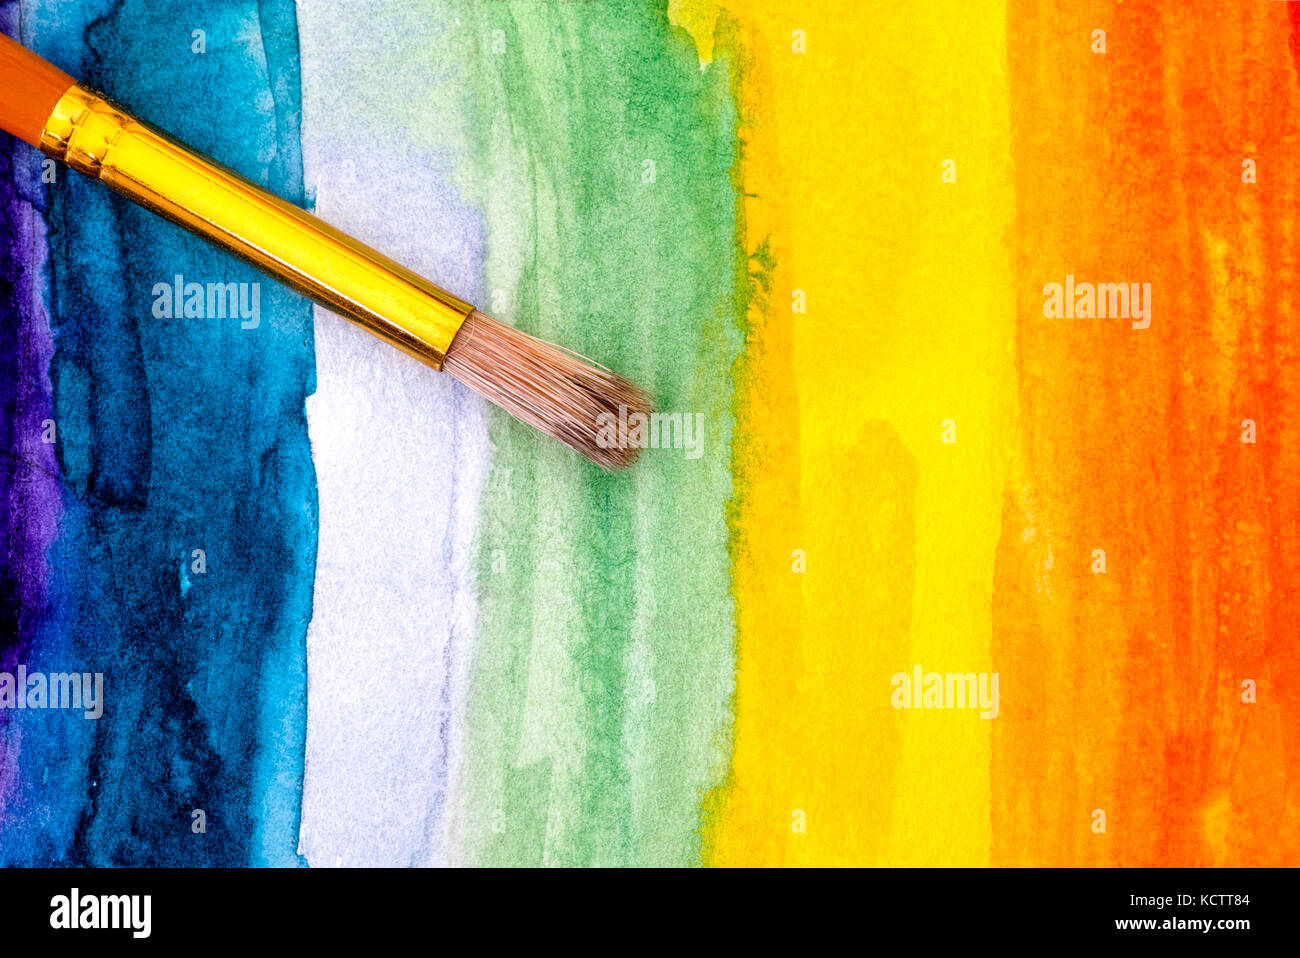 Paintbrush on rainbow watercolour hand drawing backgrounds. Close-up. - Stock Image